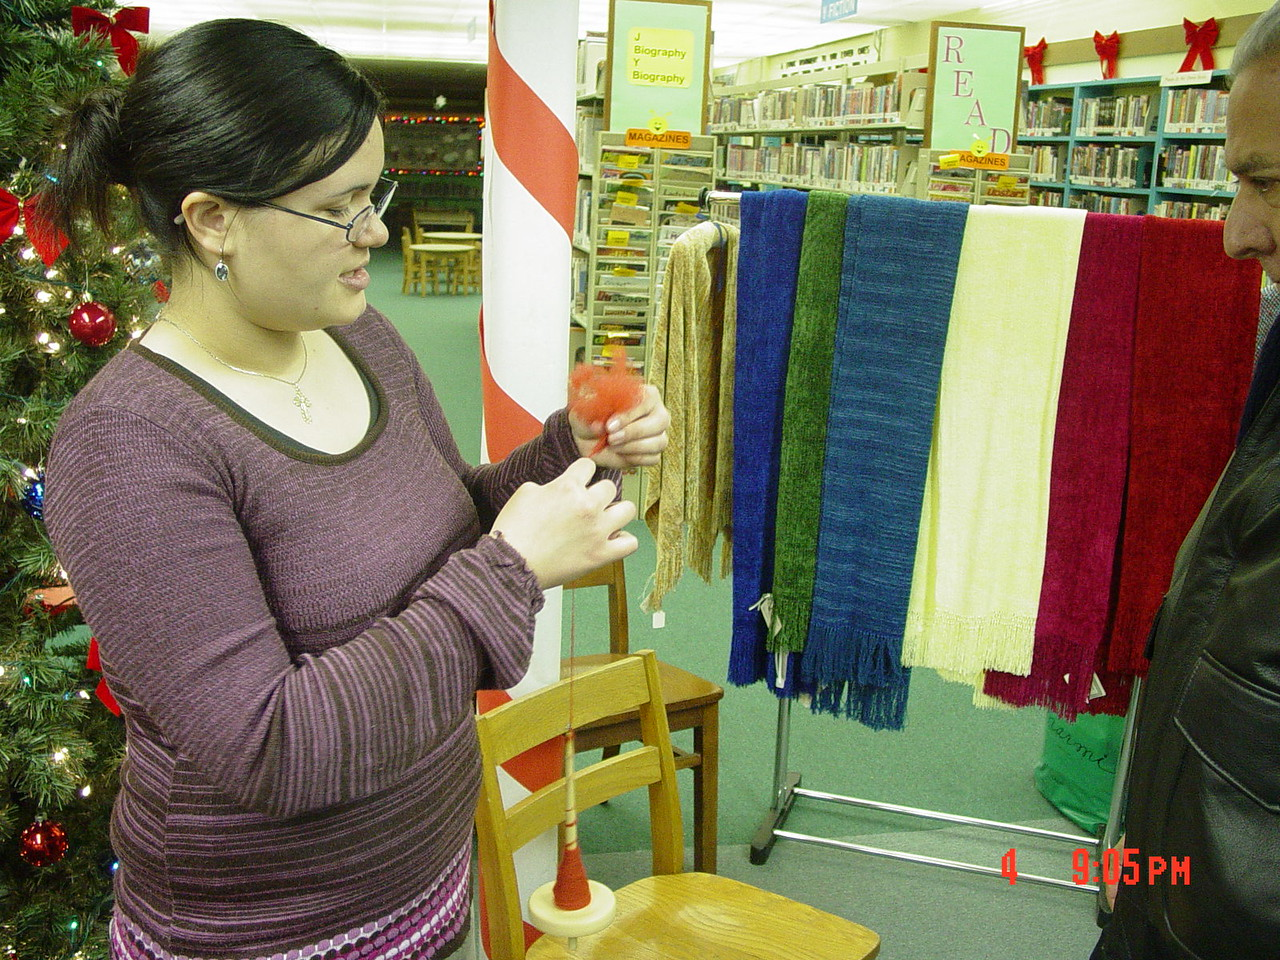 Cristina Perdomo showing an artwalker the next step in processing wool into yarn.